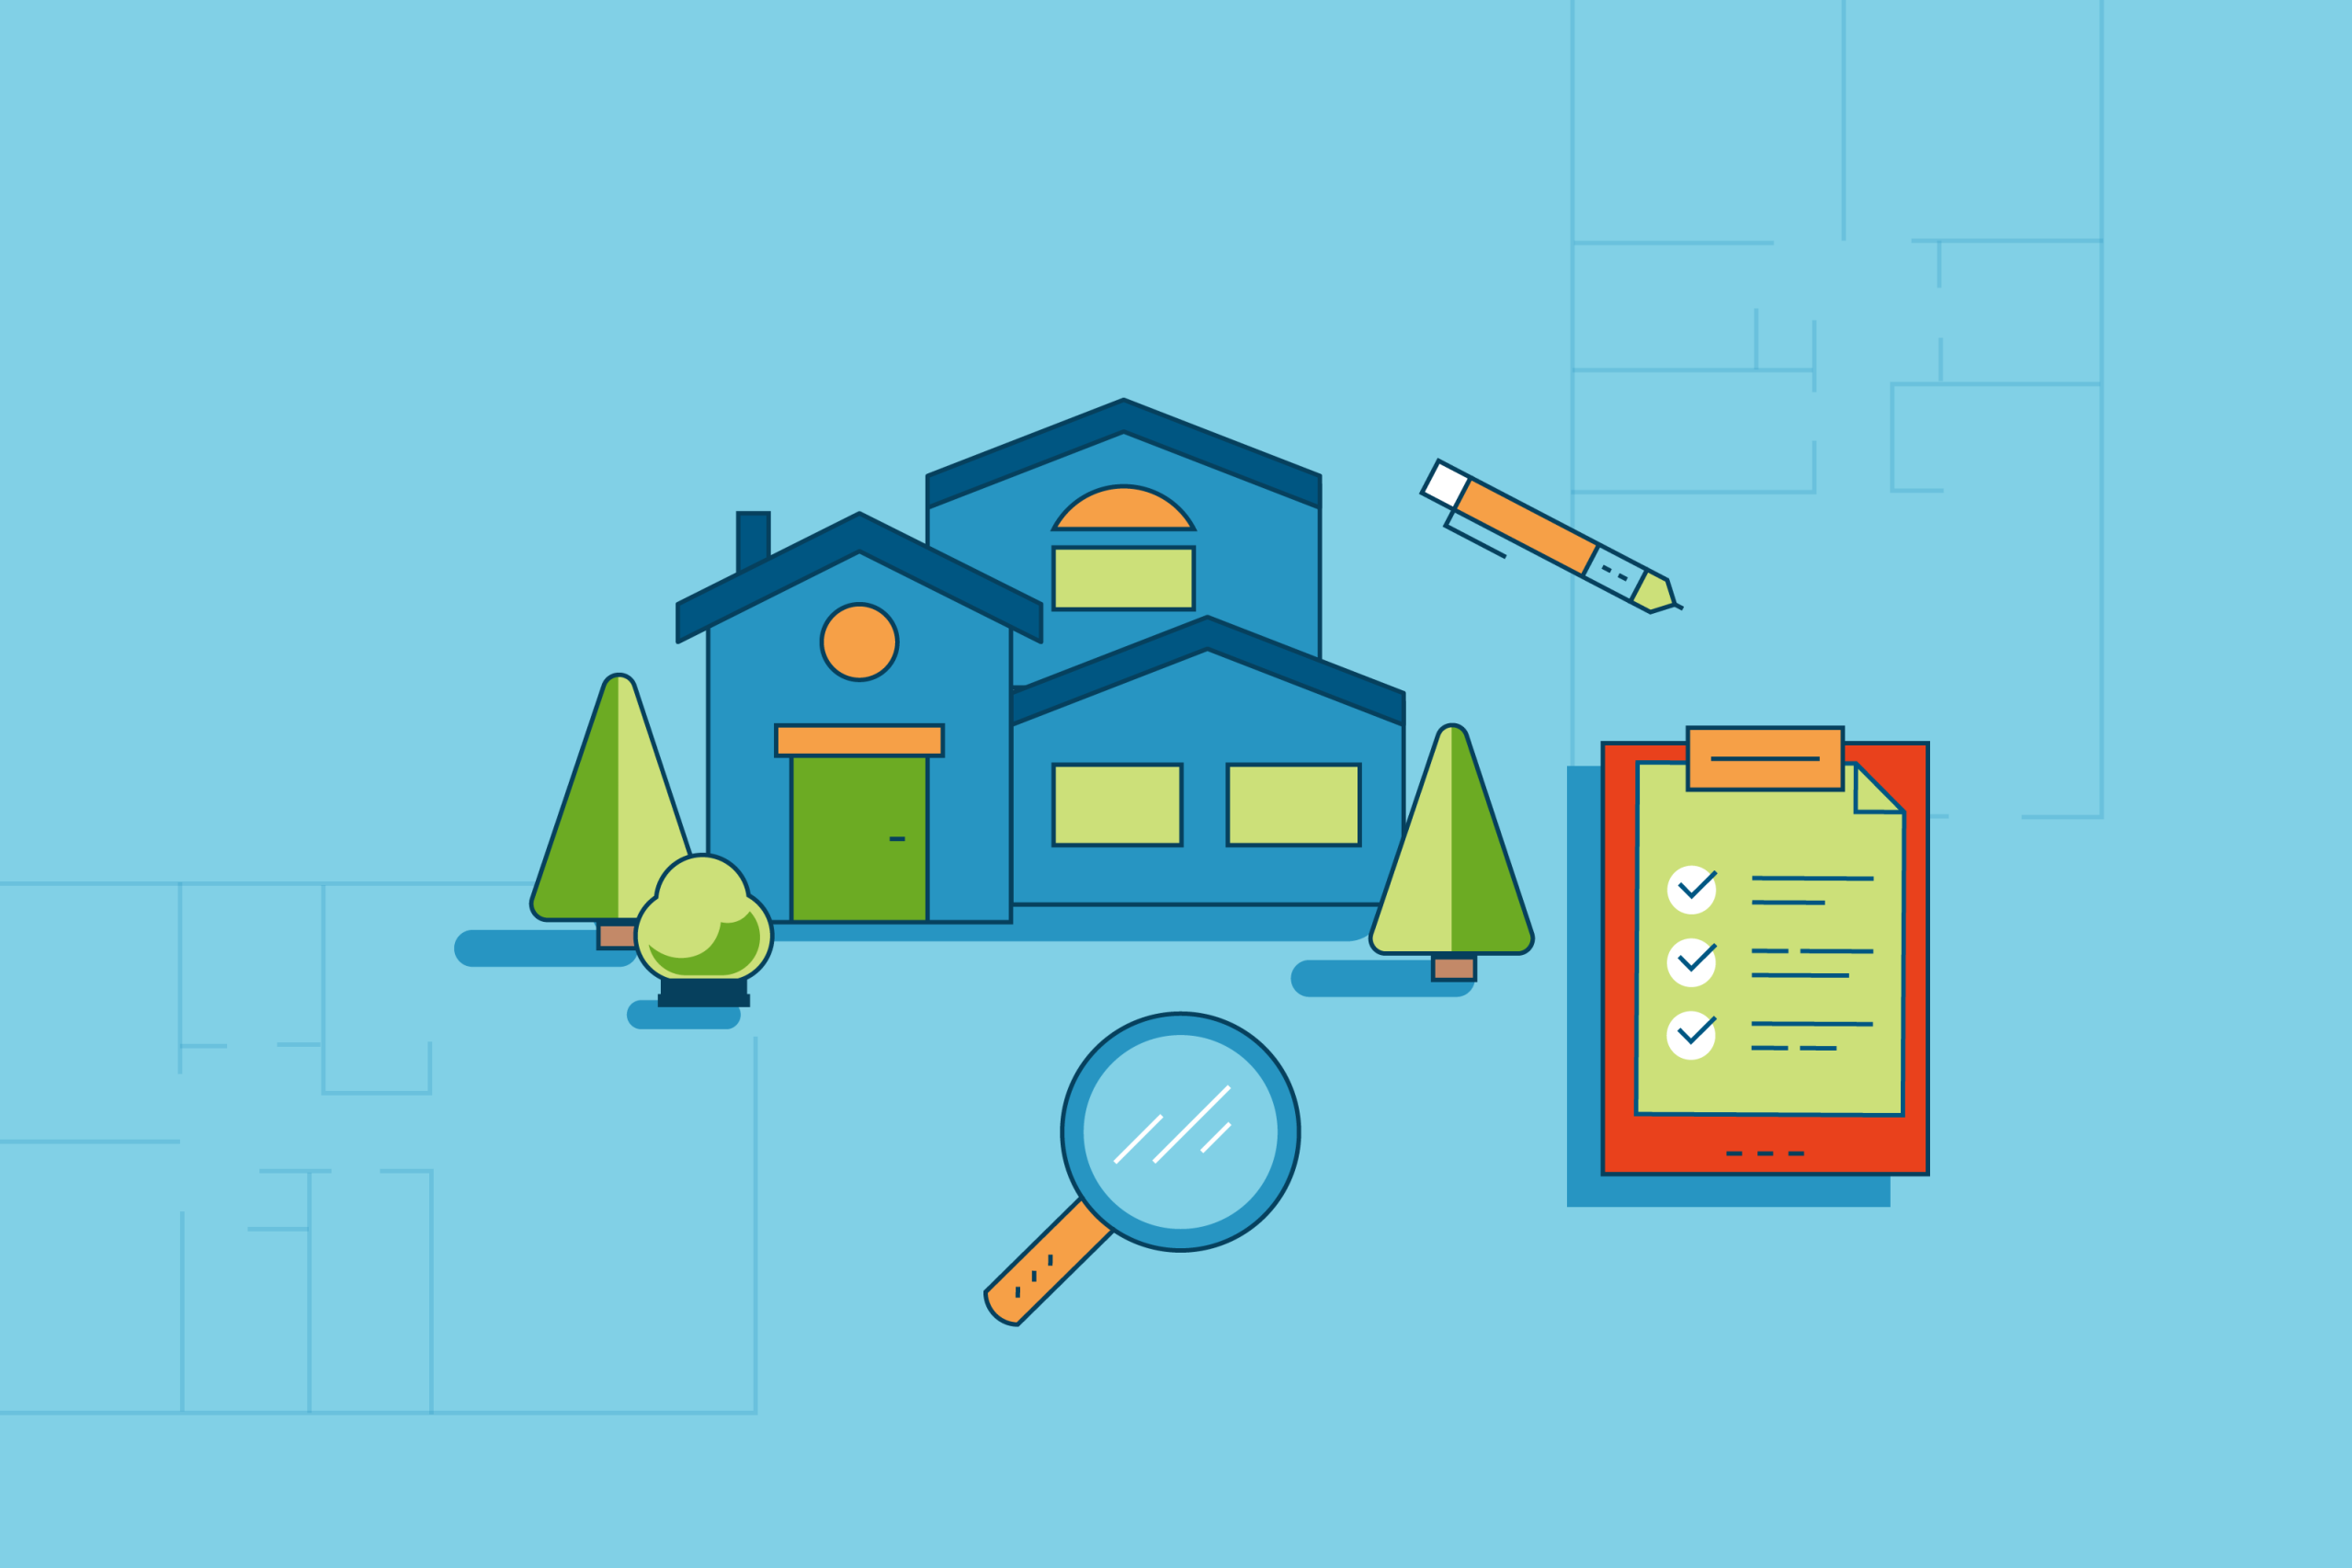 Home appraisal illustration